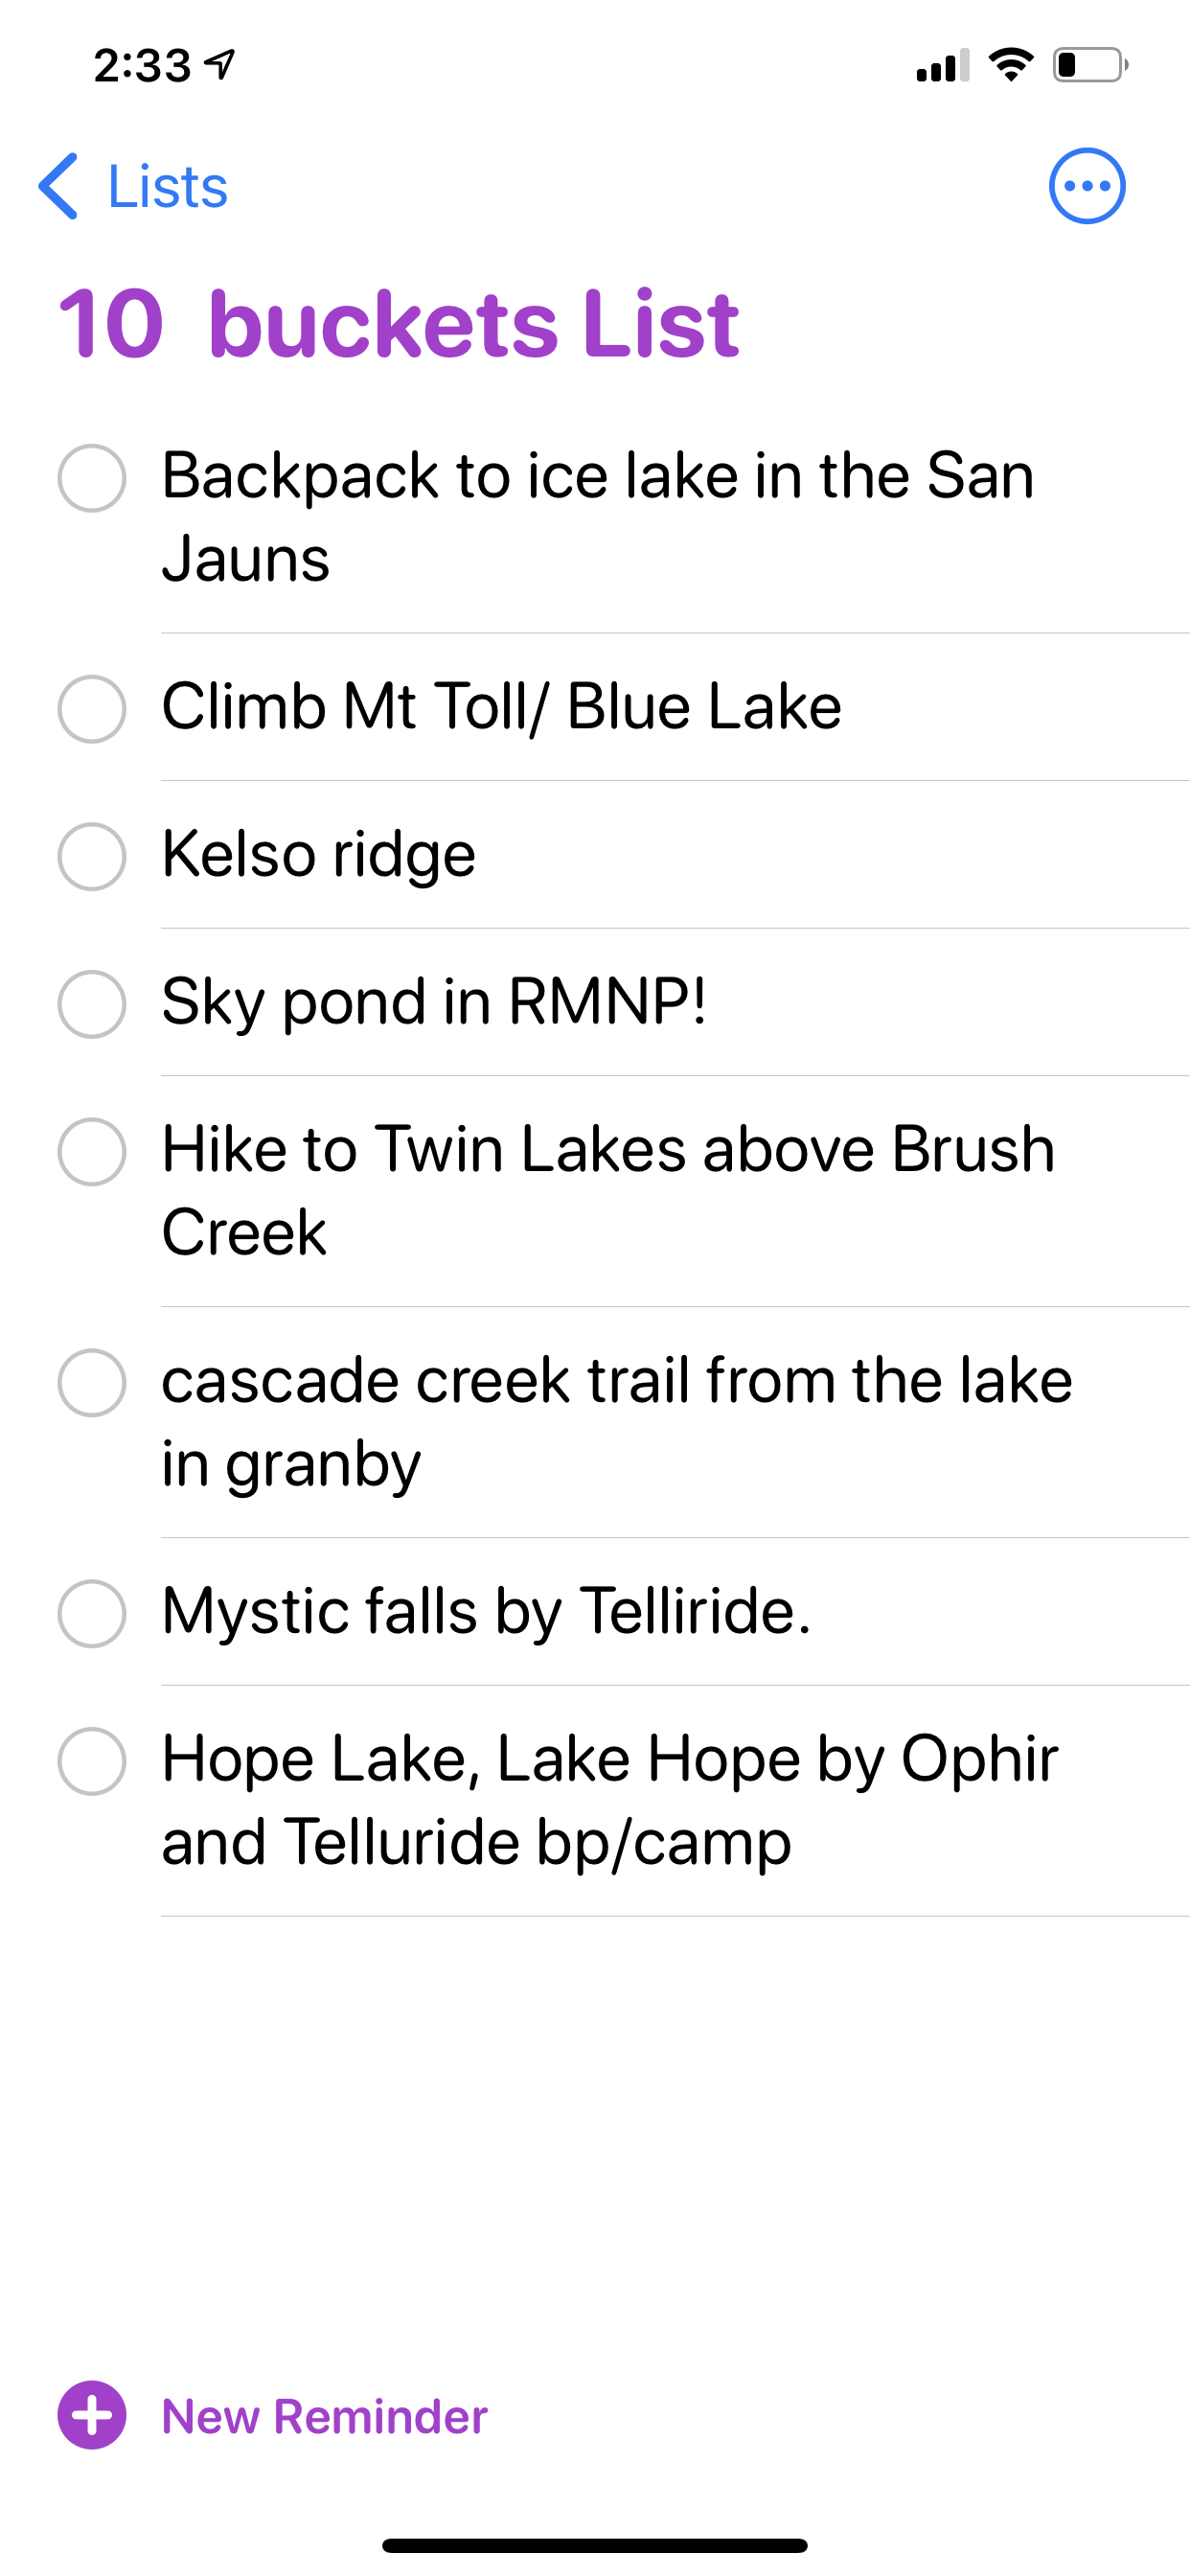 Bob Maiocco's Colorado Bucket List